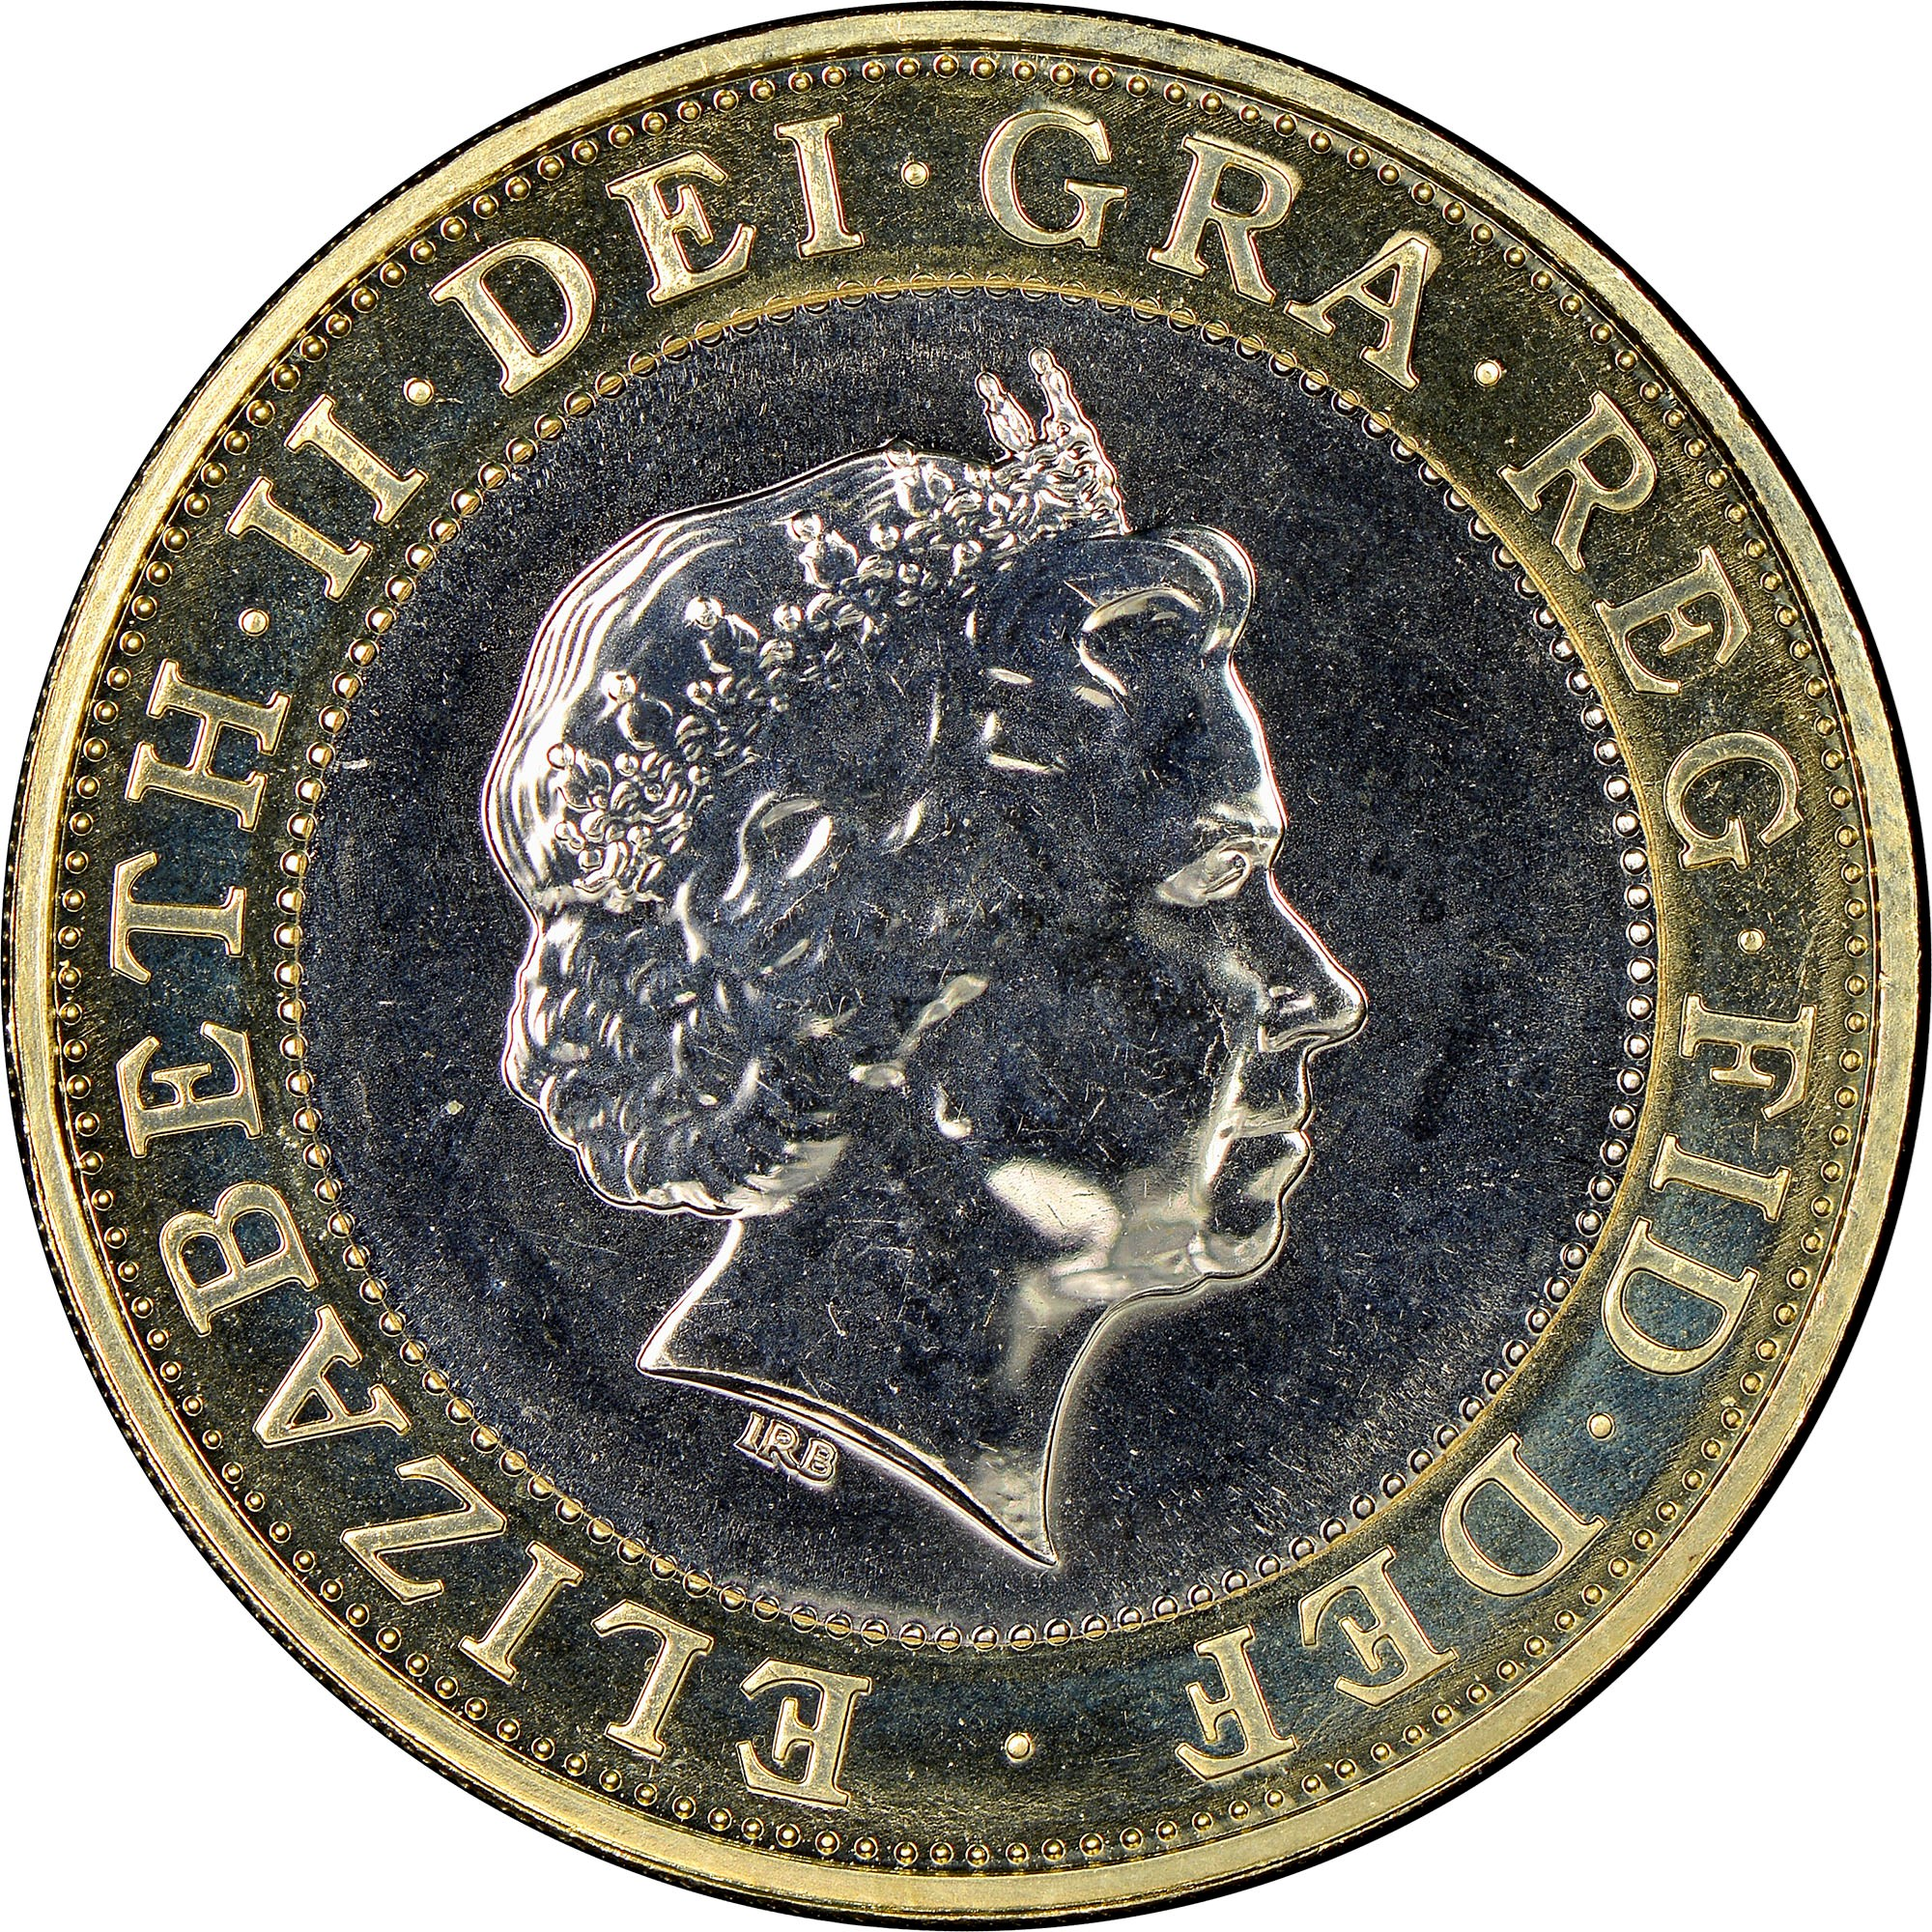 what is the weight of a 2 pound coin